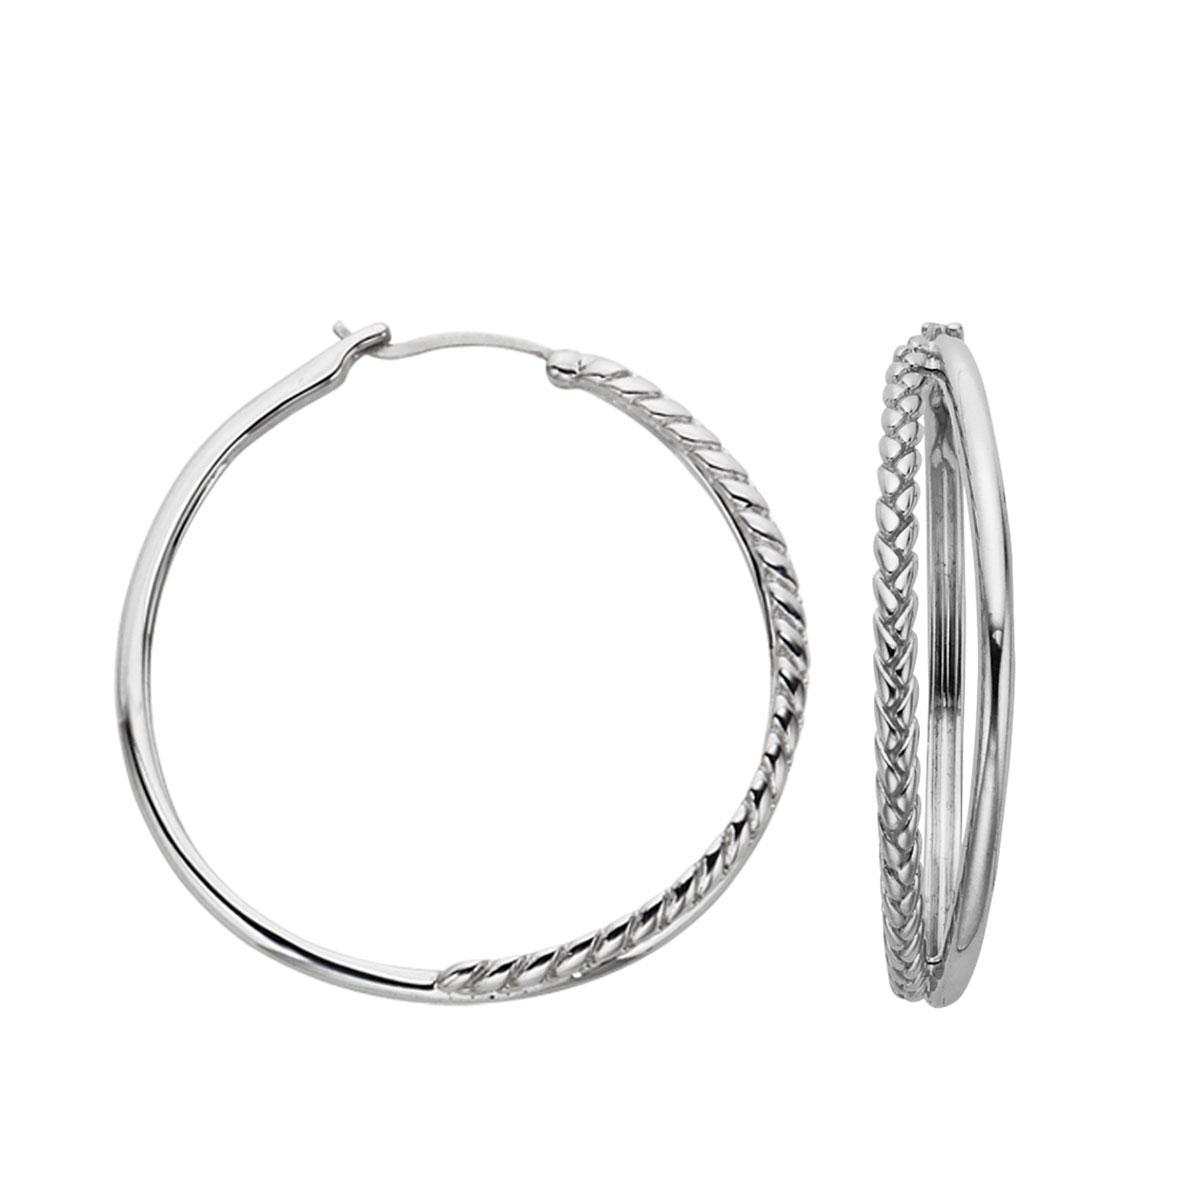 Nambe Jewelry Silver Detached Braid Hoop Earrings, Pair